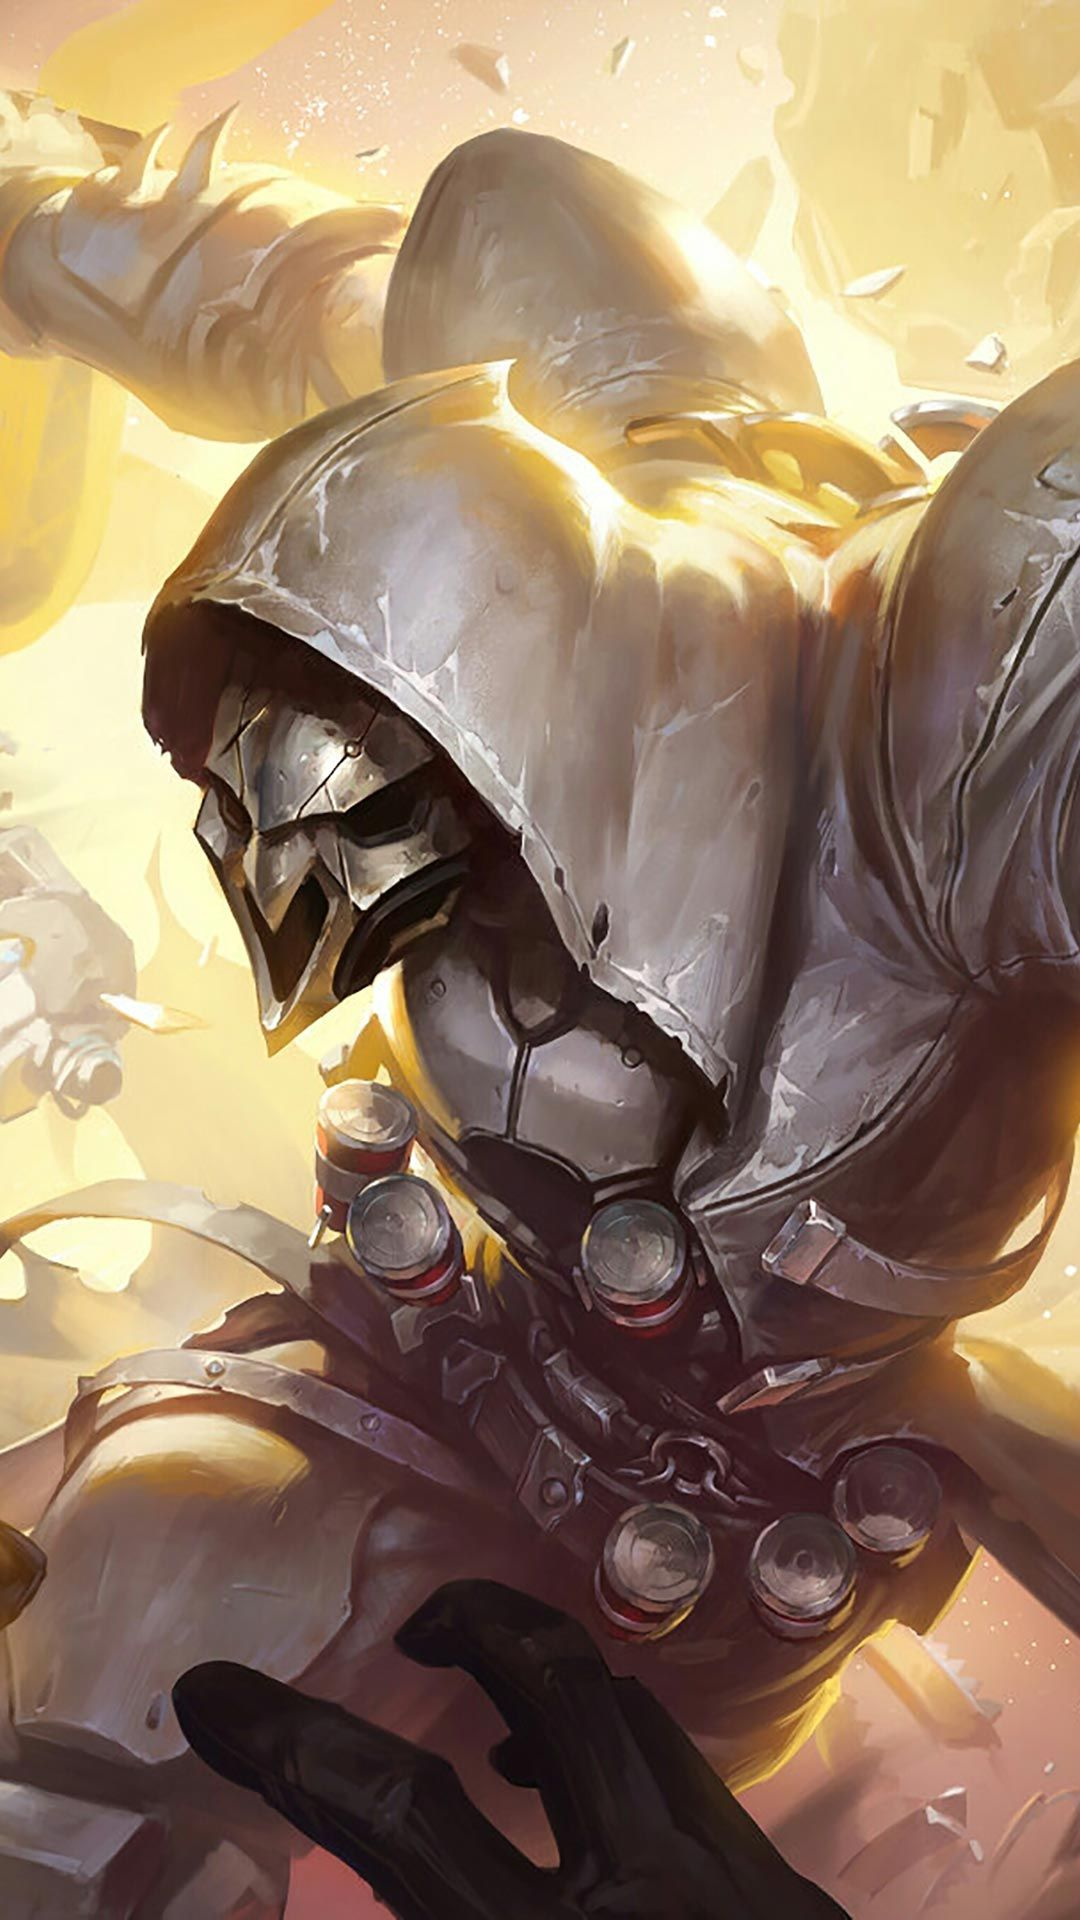 Reaper silver android, iphone wallpaper, mobile background